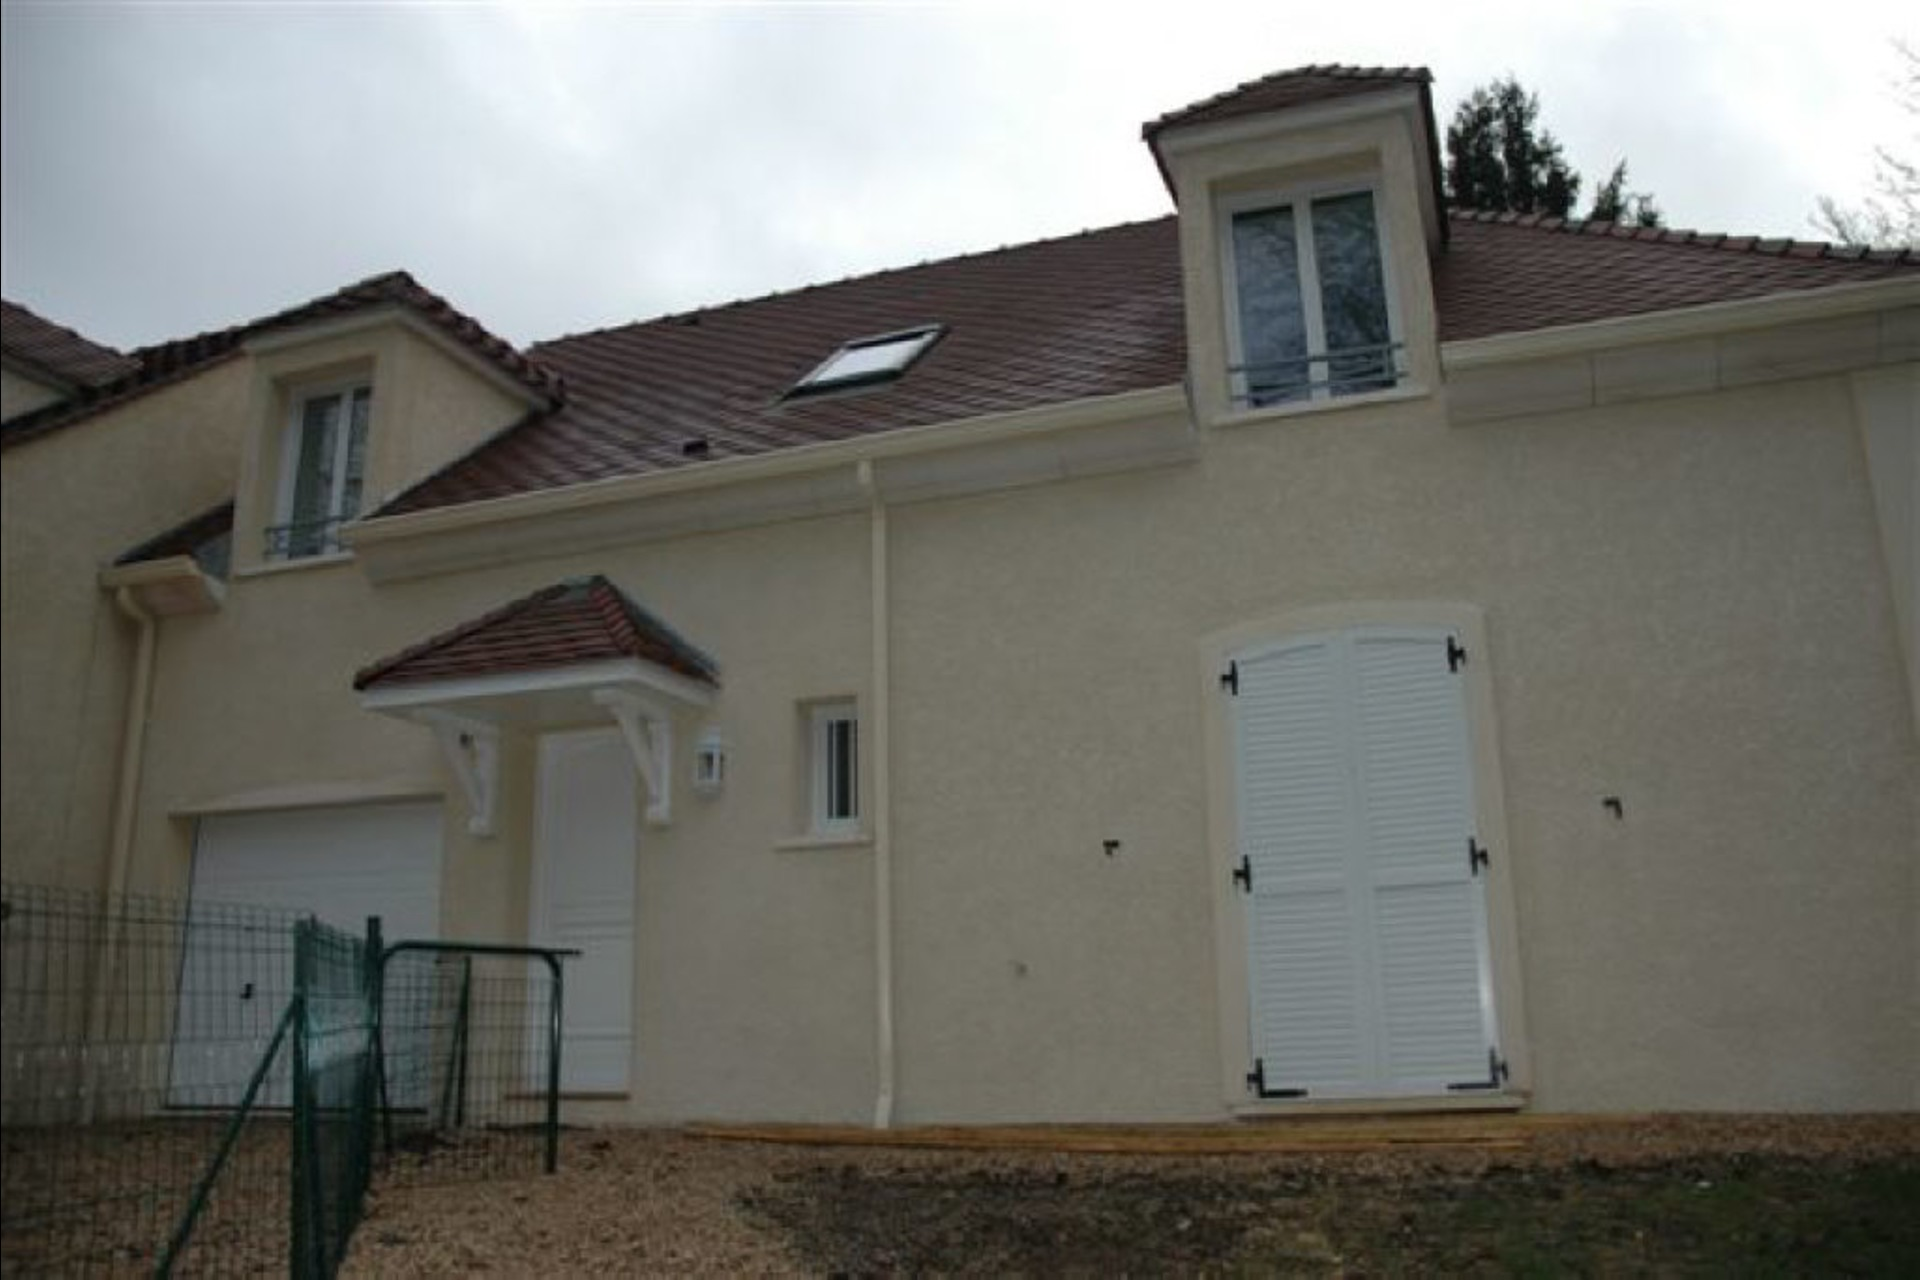 image 2 - House For rent - 7 rooms